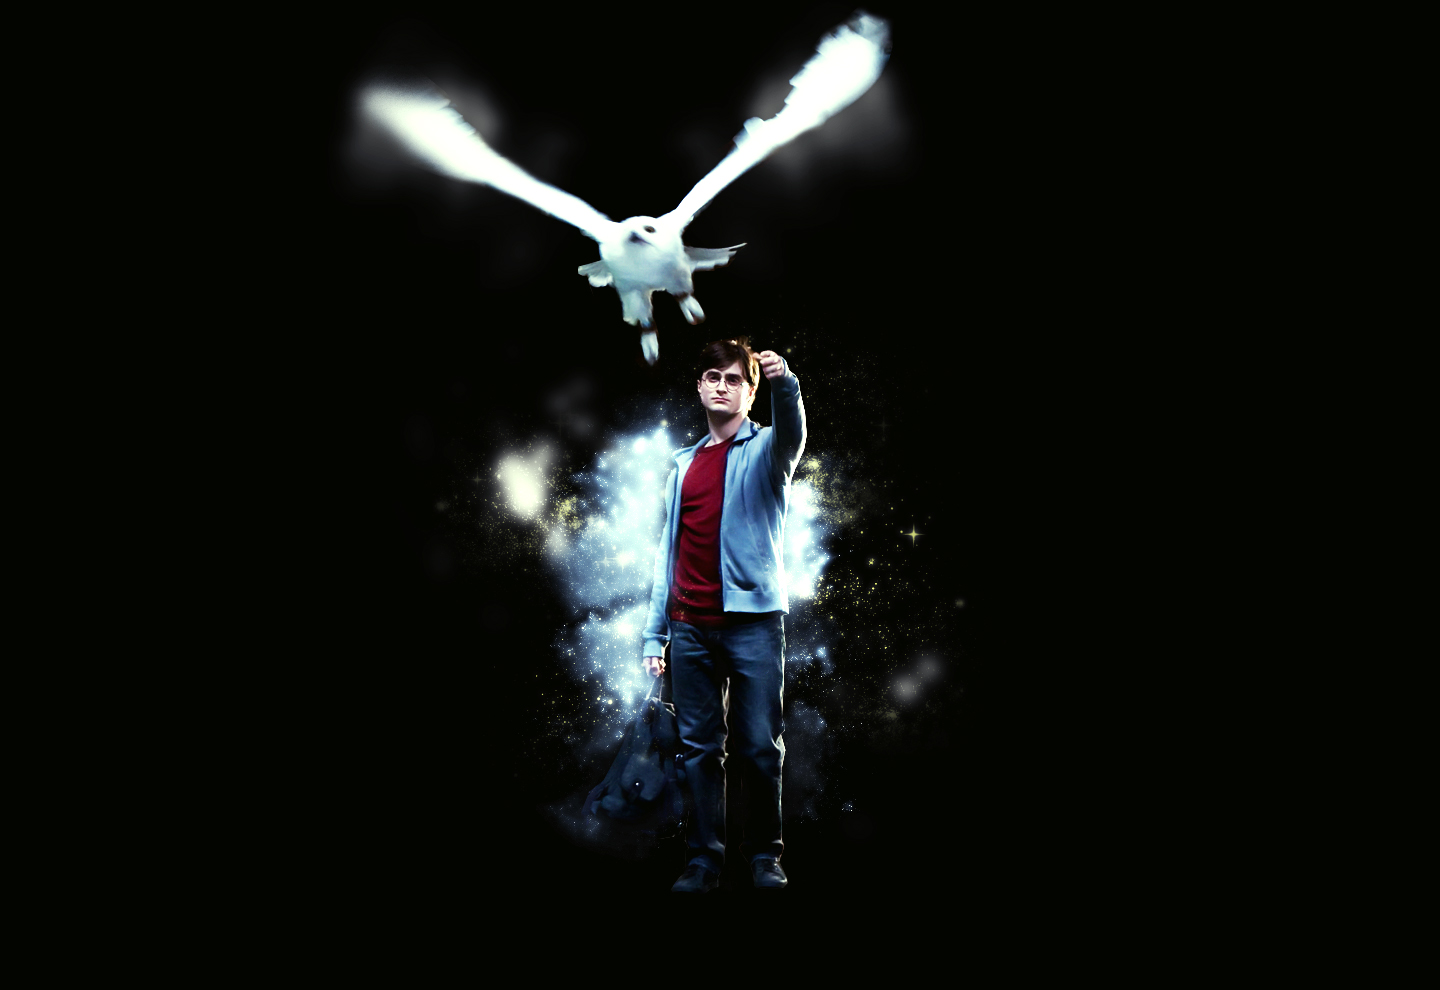 Harry Potter And The Deathly Hallows: Part 1 Wallpaper And